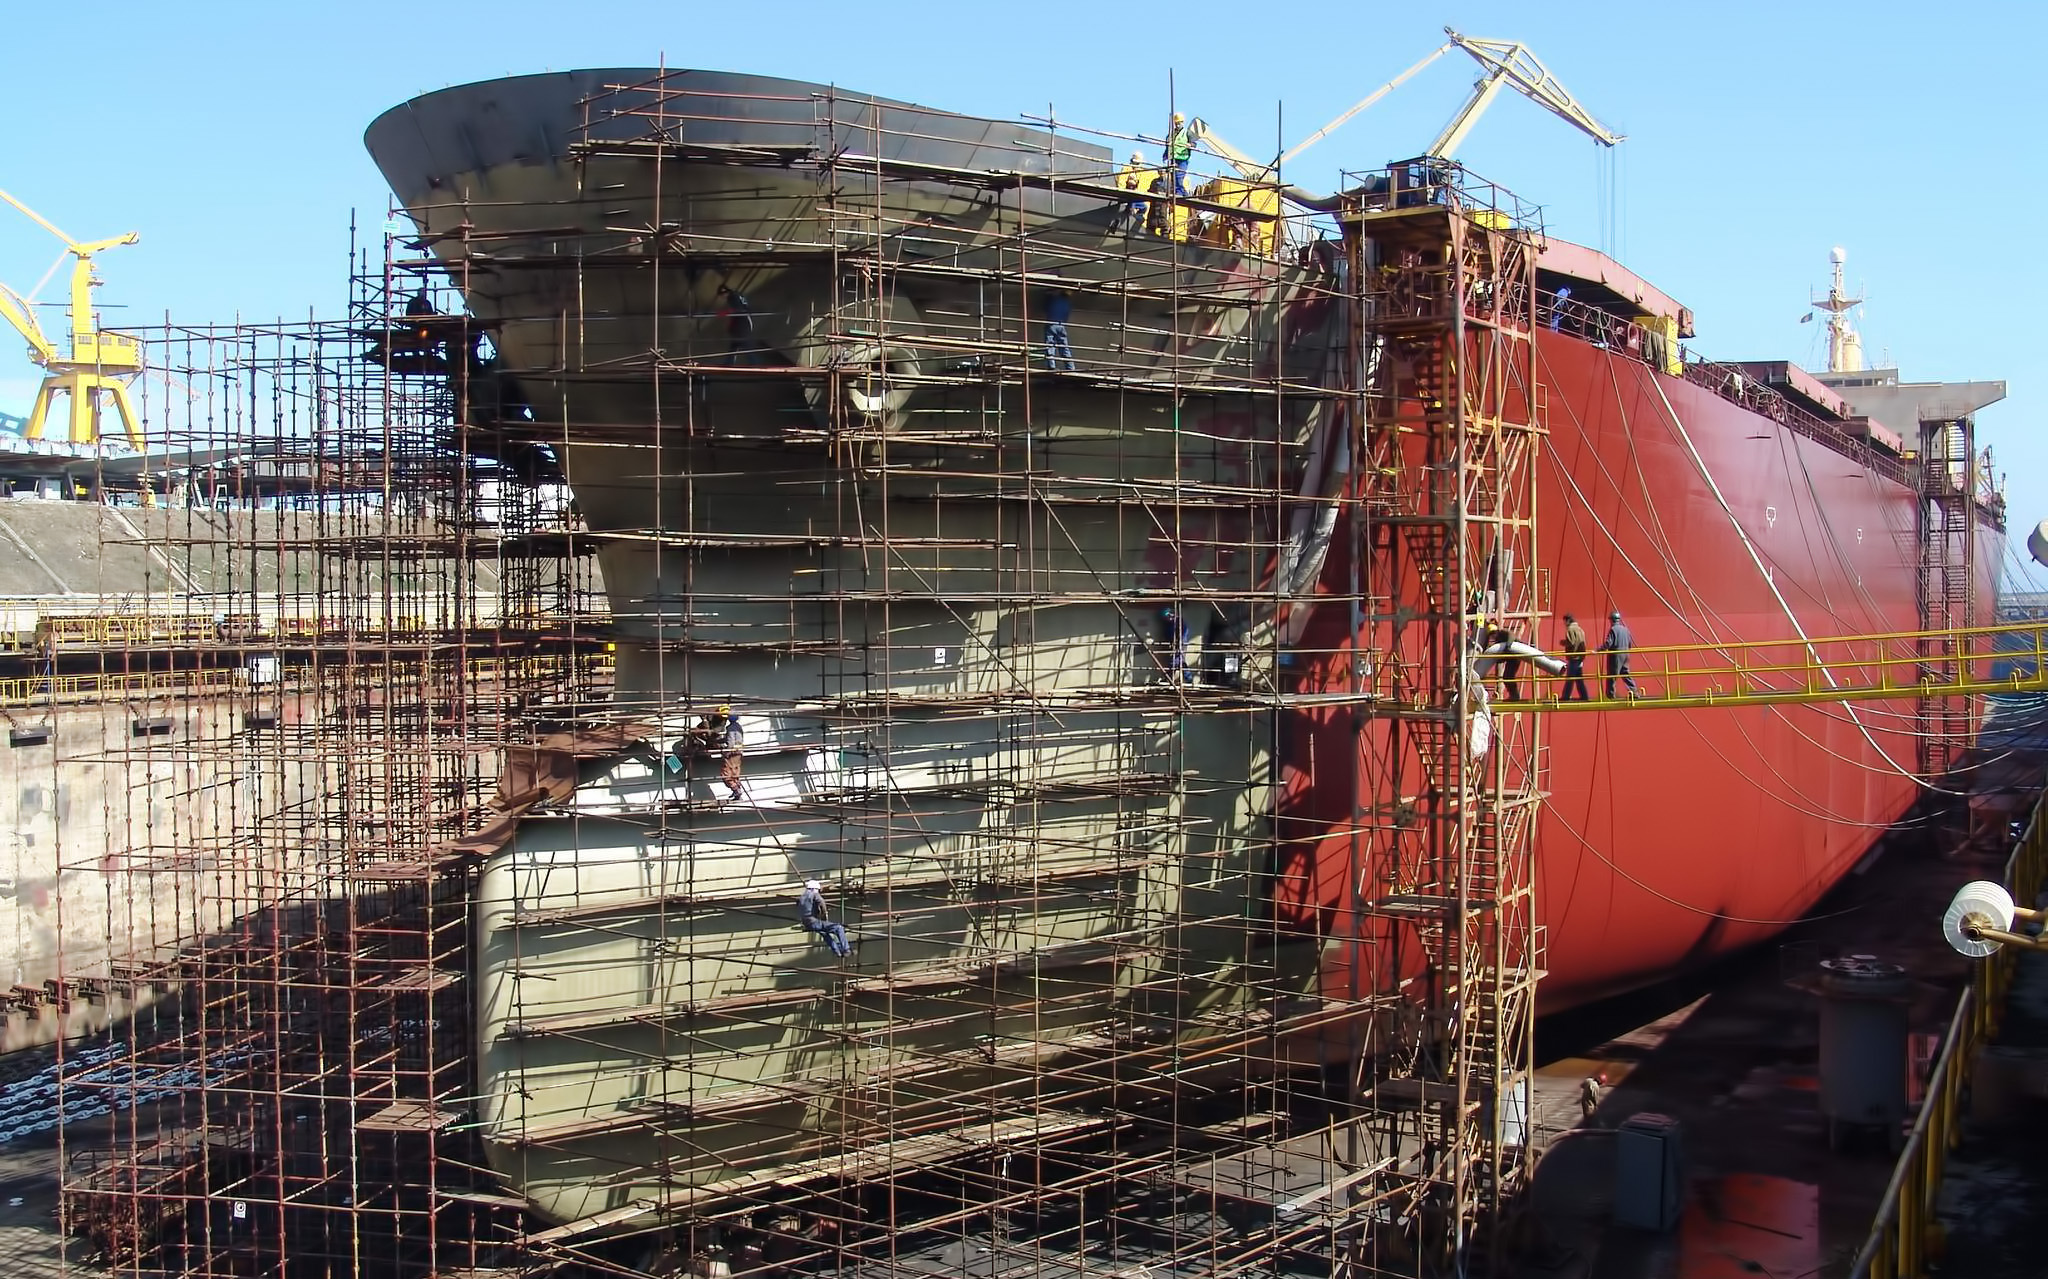 COVID-19 AND ITS CONSEQUENCES ON SHIPBUILDING CONTRACTS